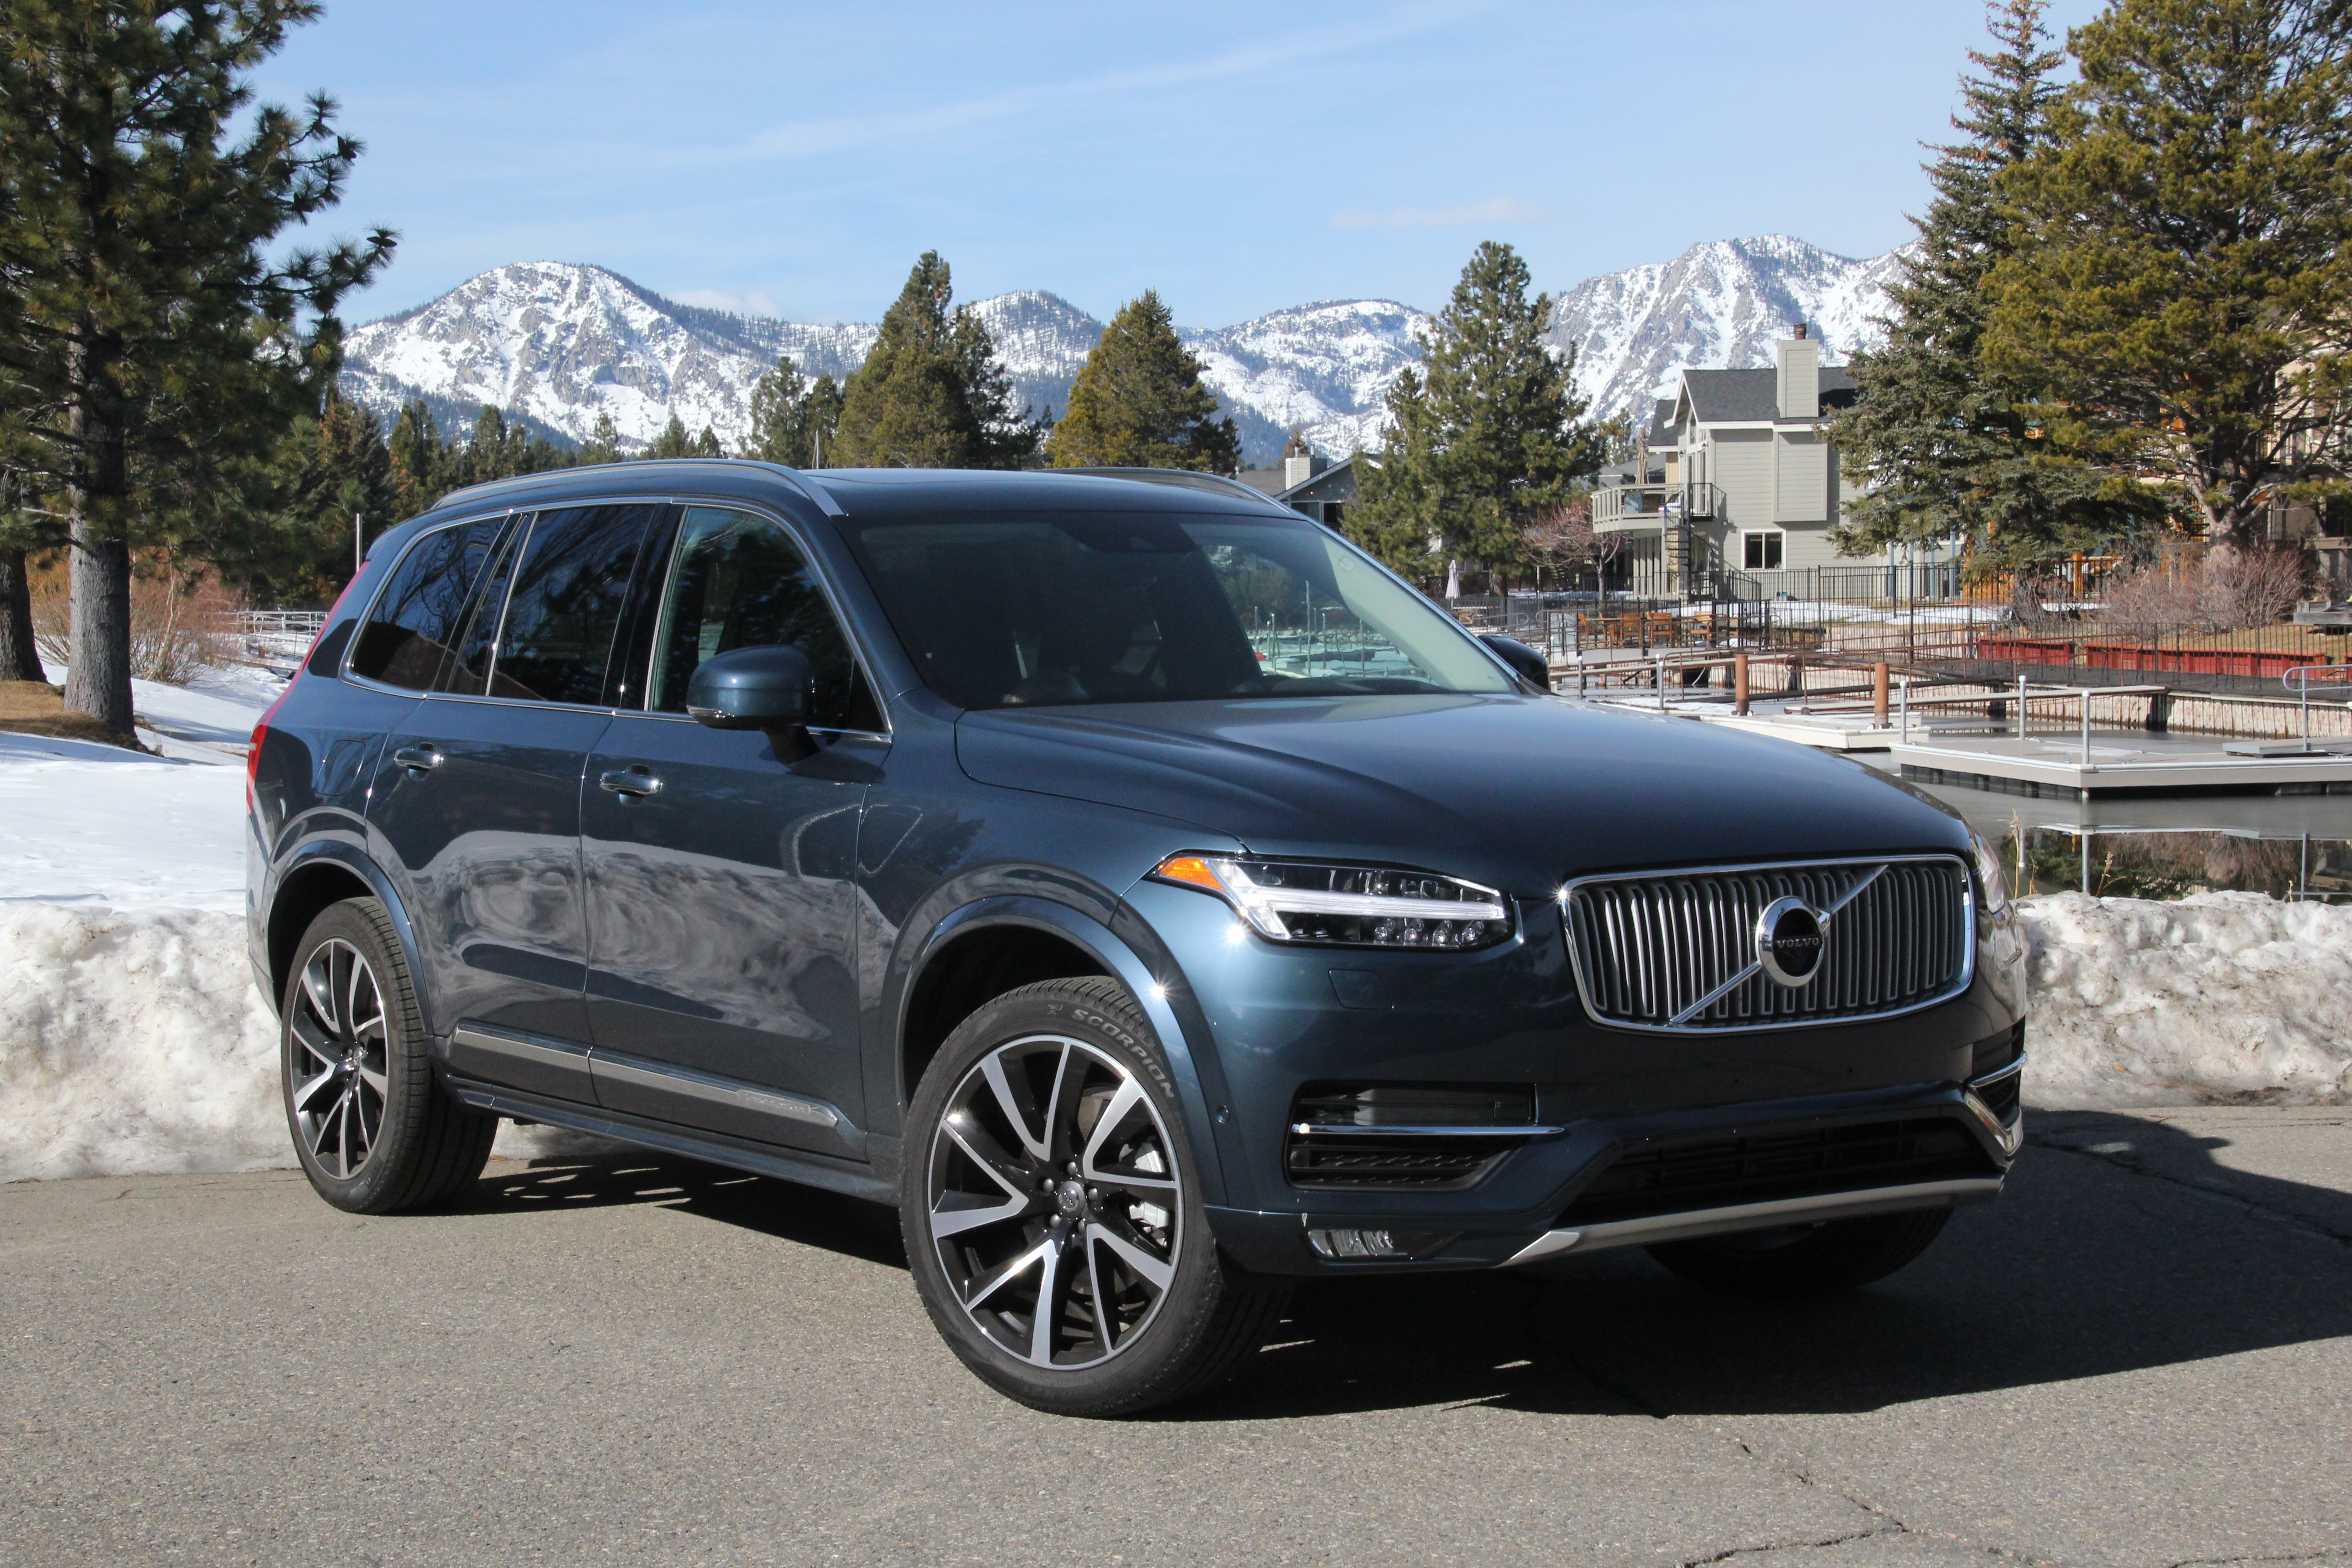 2019 Volvo Xc90 Awd Inscription Inscribed To Be The Best But